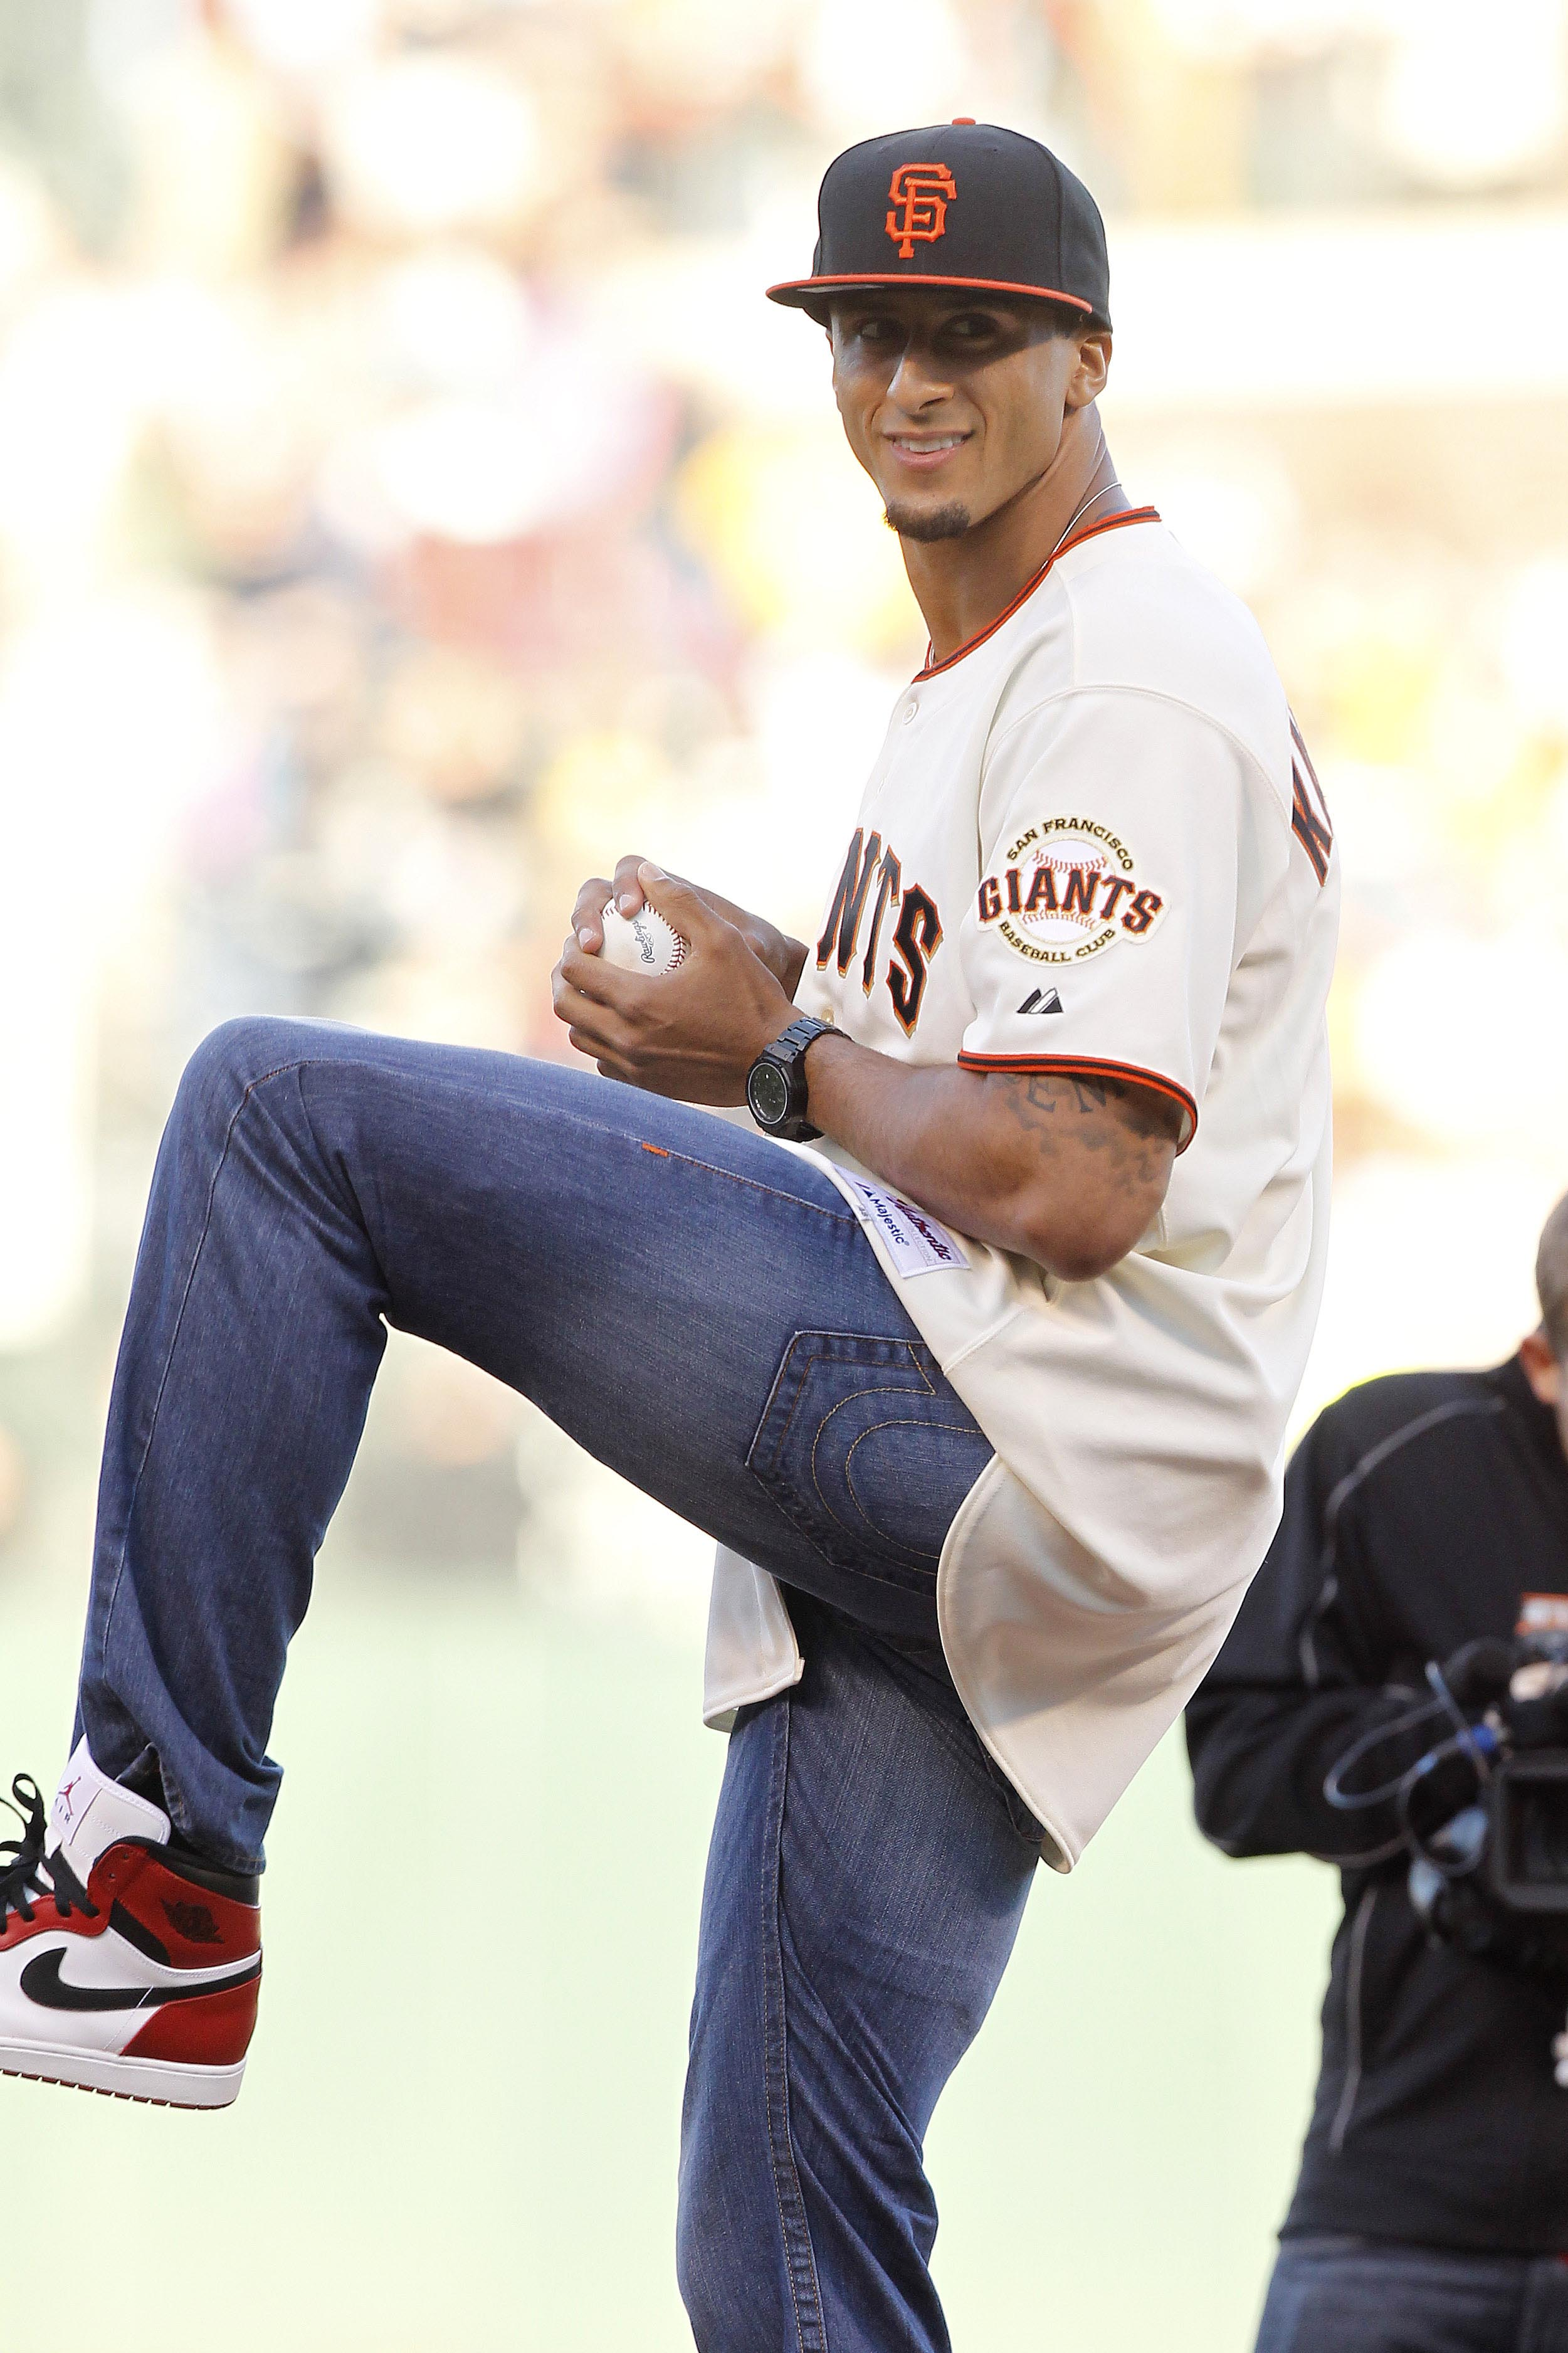 Colin Kaepernick tossed a ceremonial first pitch before the start of a Giants-Marlins game last month. (USAT)